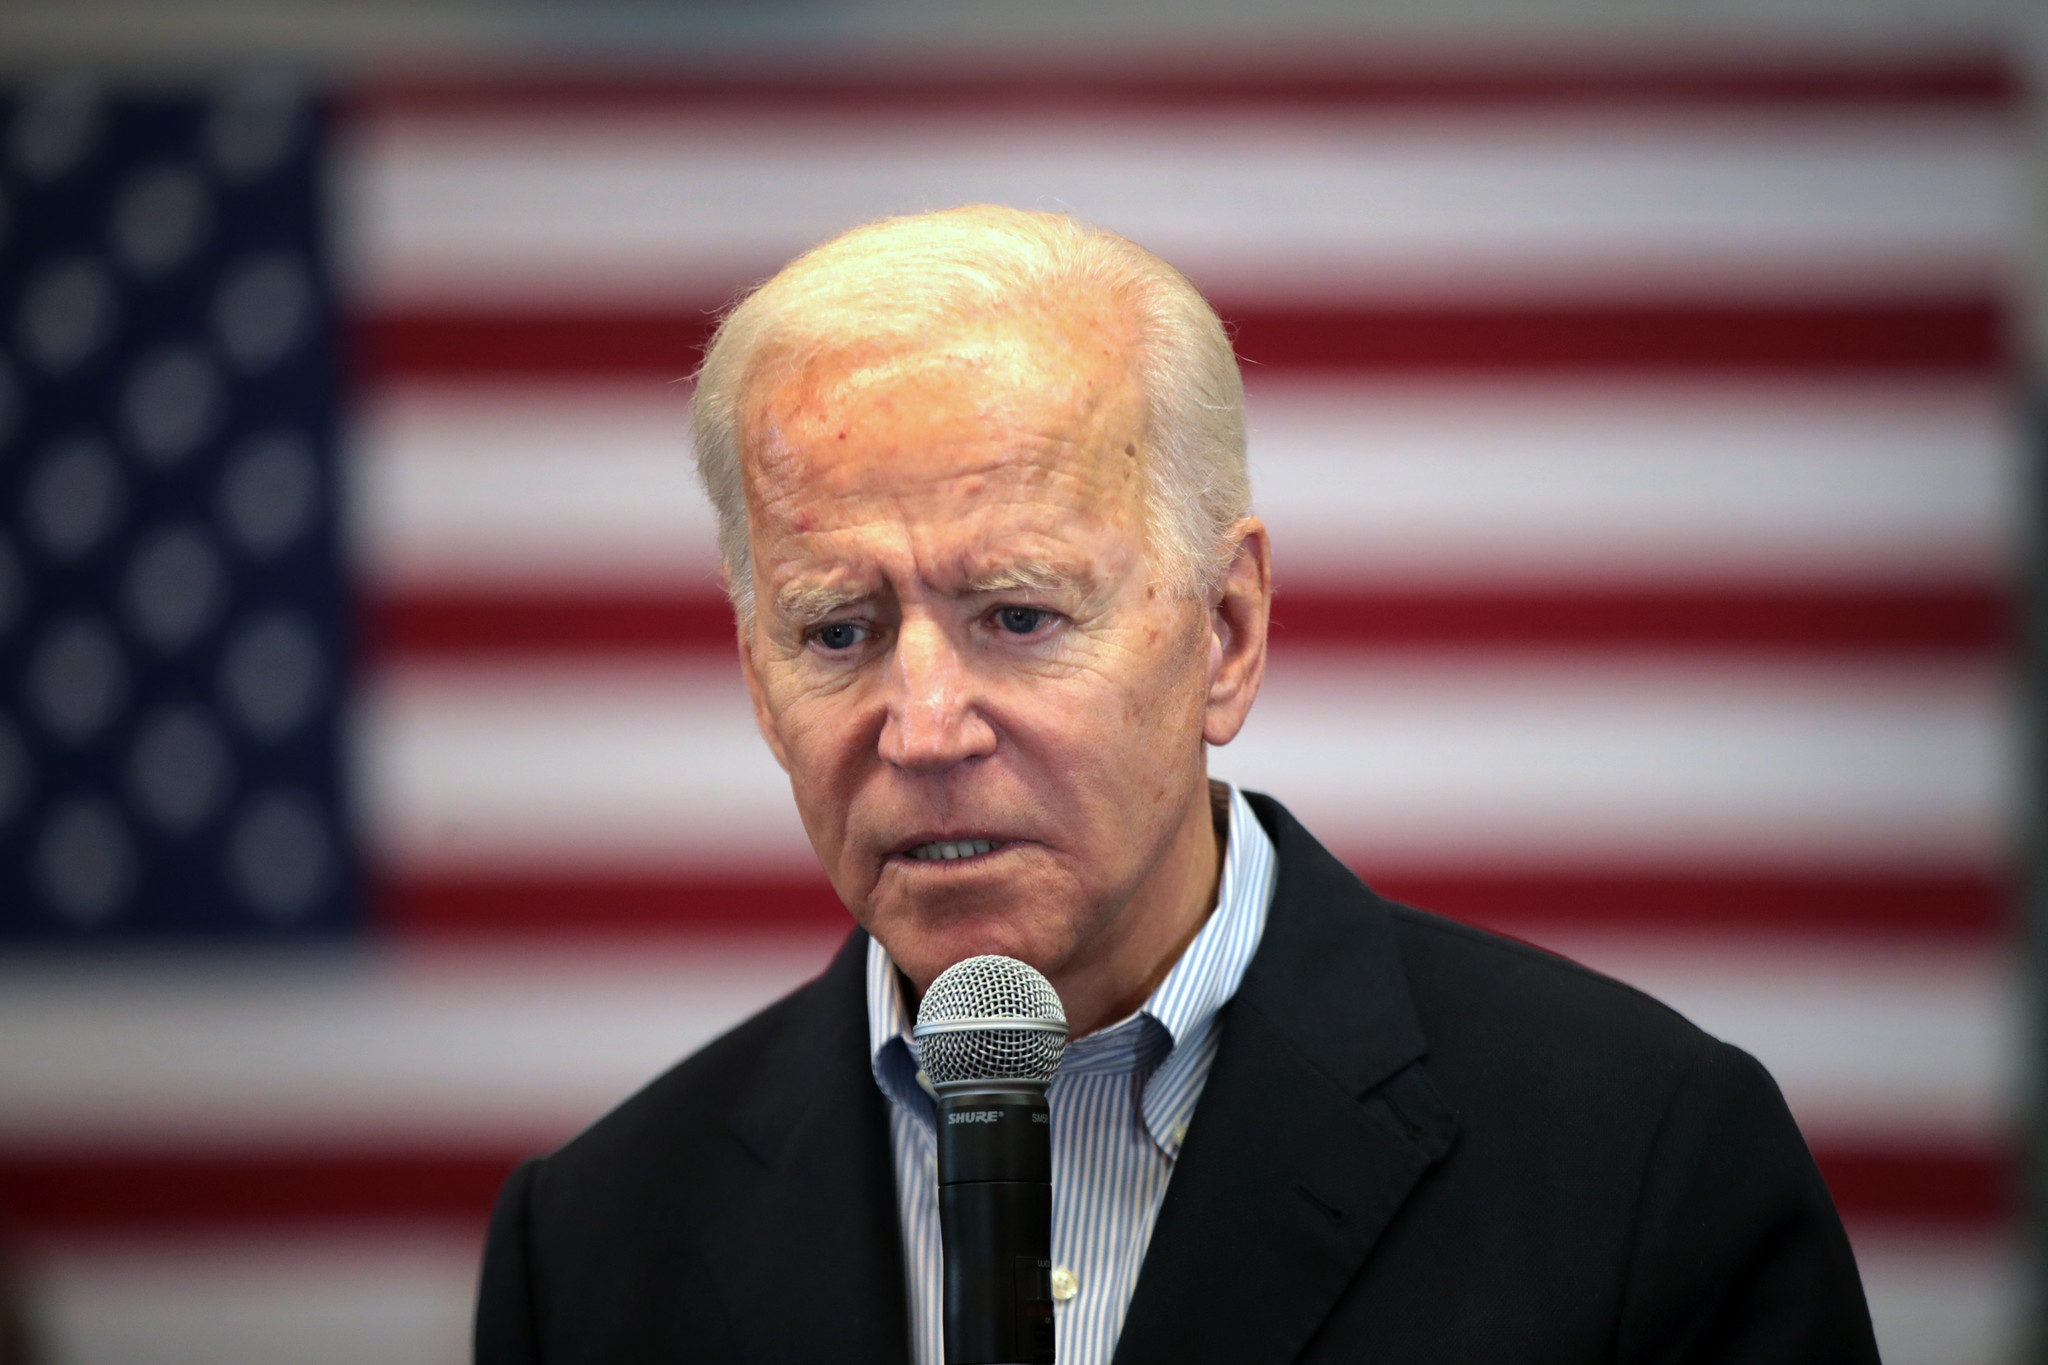 Angry Joe Biden confronts Iowa voter who asked about his son: 'You're a damn liar'